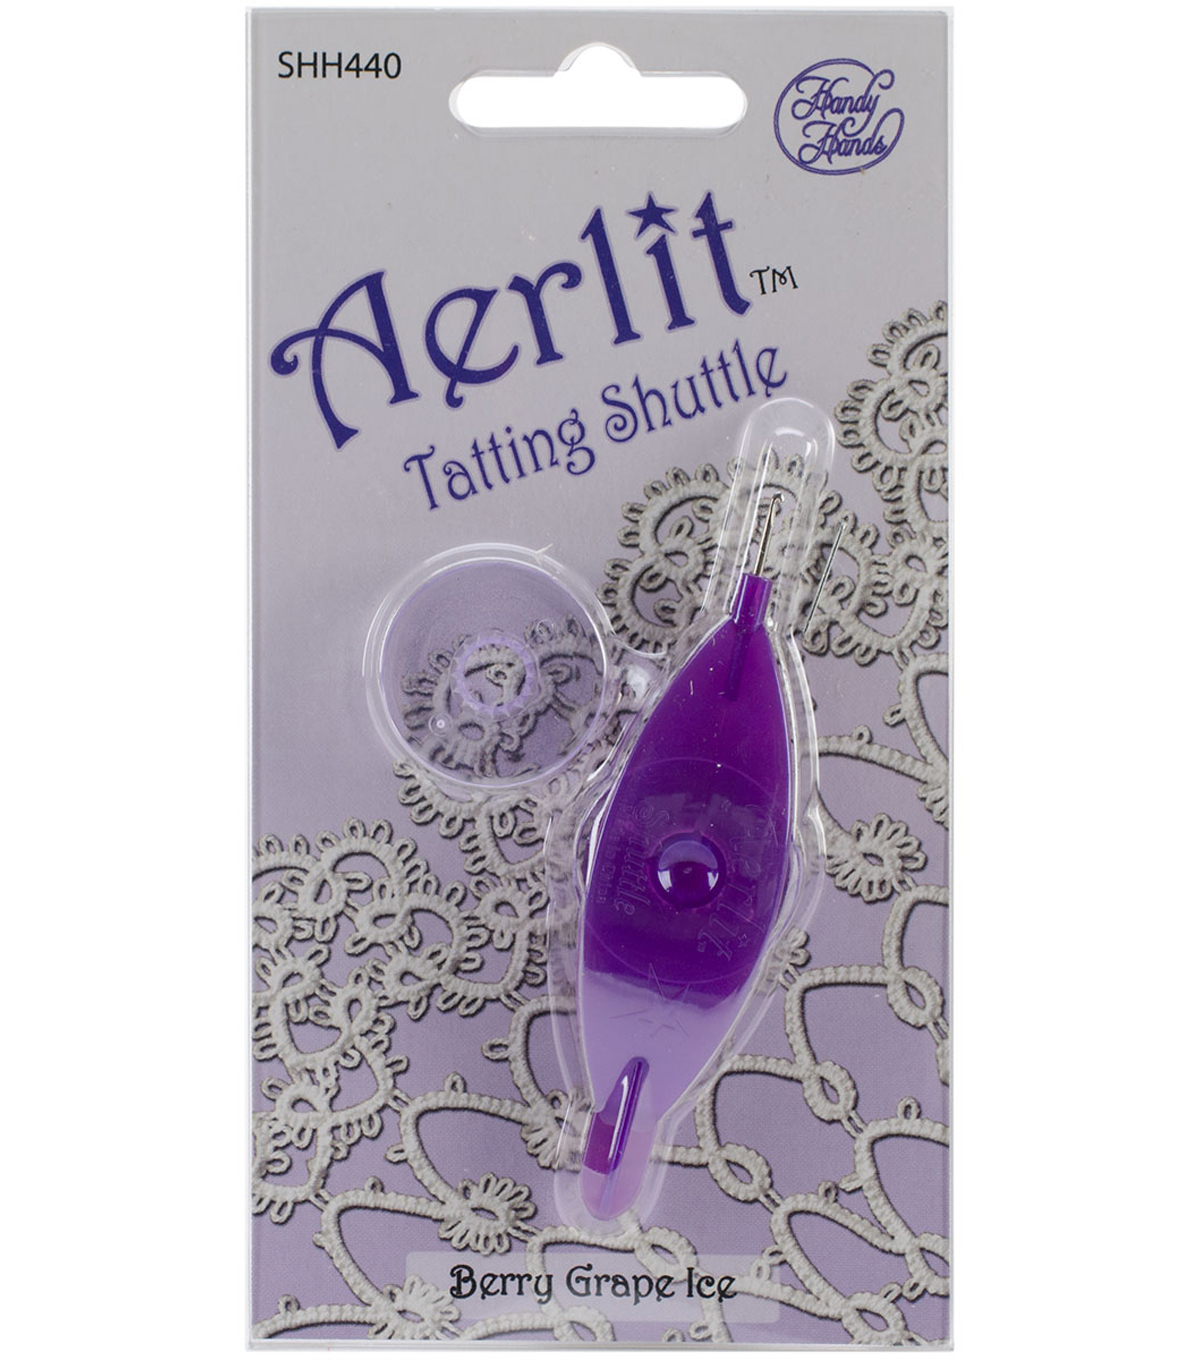 Aerlit Tatting Shuttle With 2 Bobbins